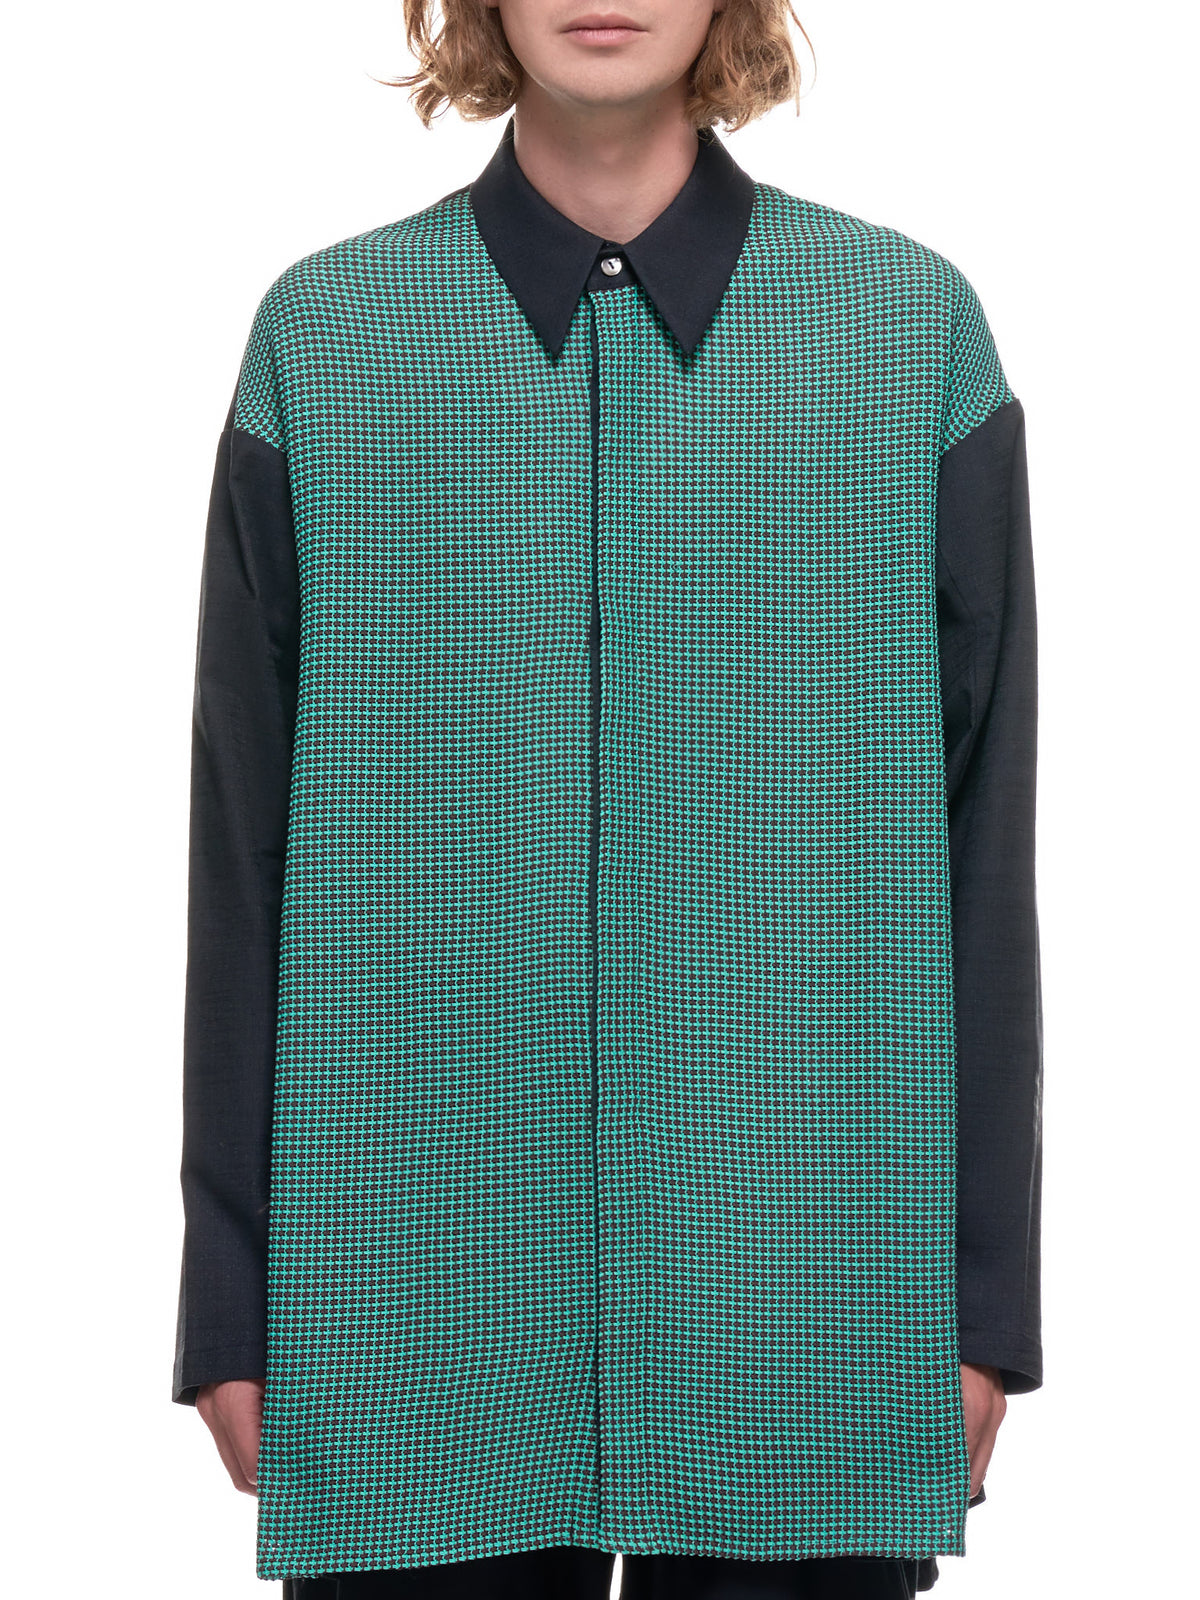 Straw Weave Shirt (ST-03-LINCOLN-BROWN-JADE-GRID)